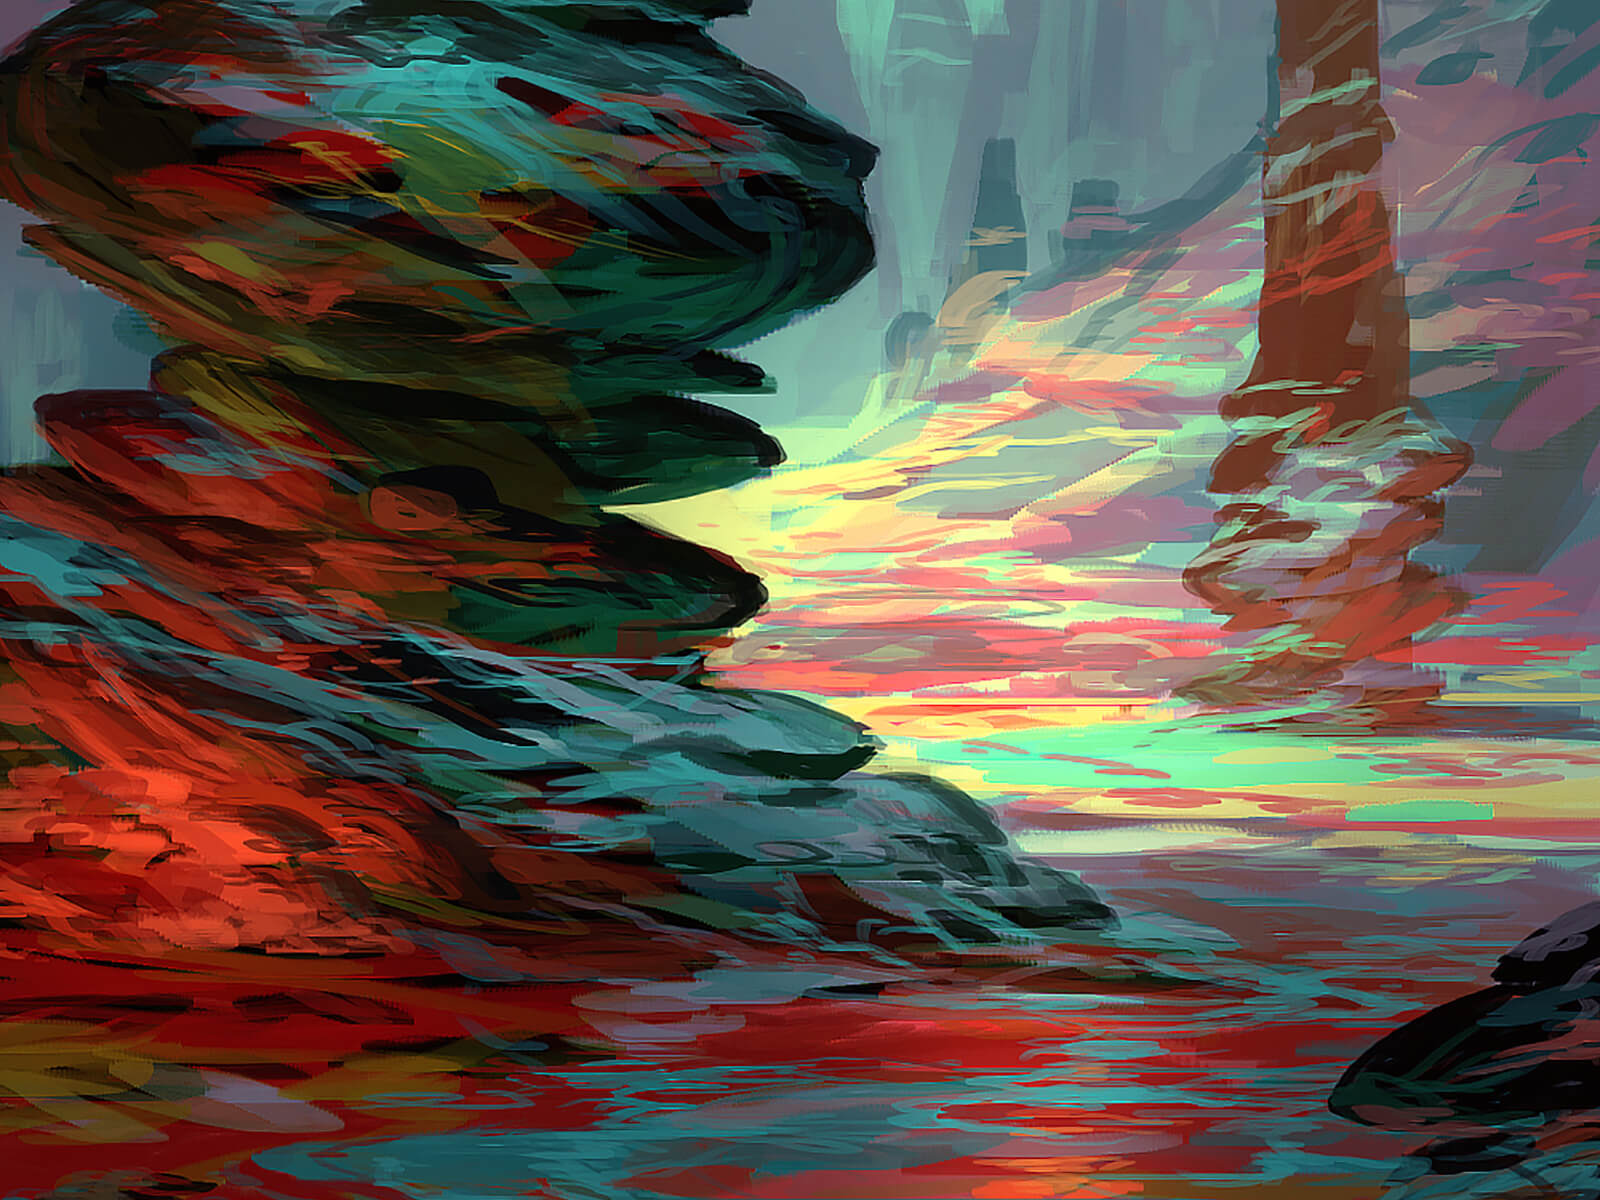 A rocky, alien environment with colorful outcroppings. A slender strip of stone hovers mysteriously above the landscape.